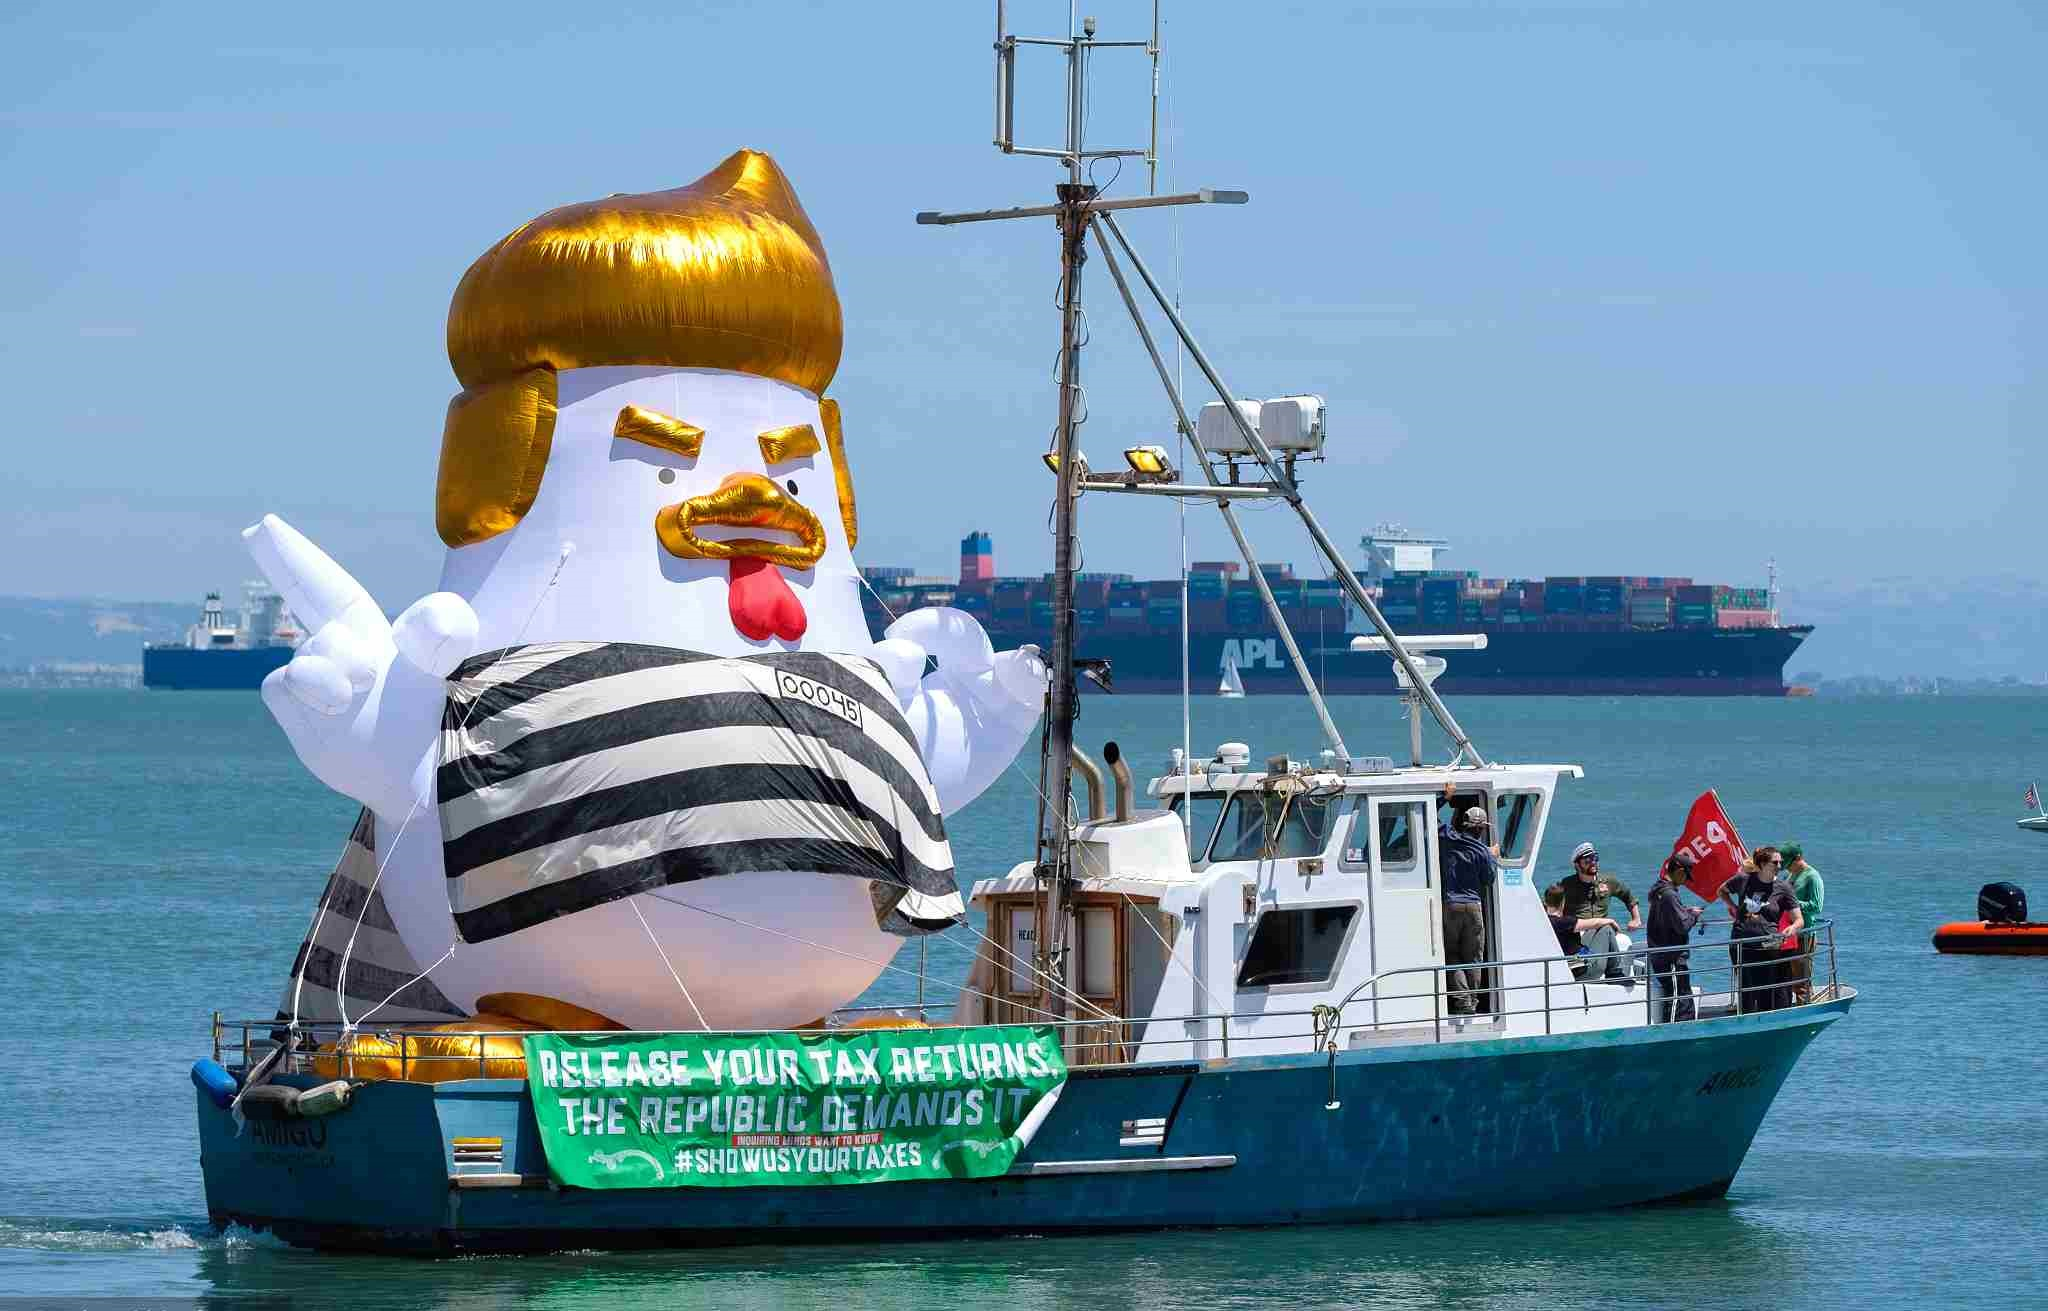 A gigantic inflatable 'Trump Chicken' donning a prison uniform sets sail from San Francisco Bay